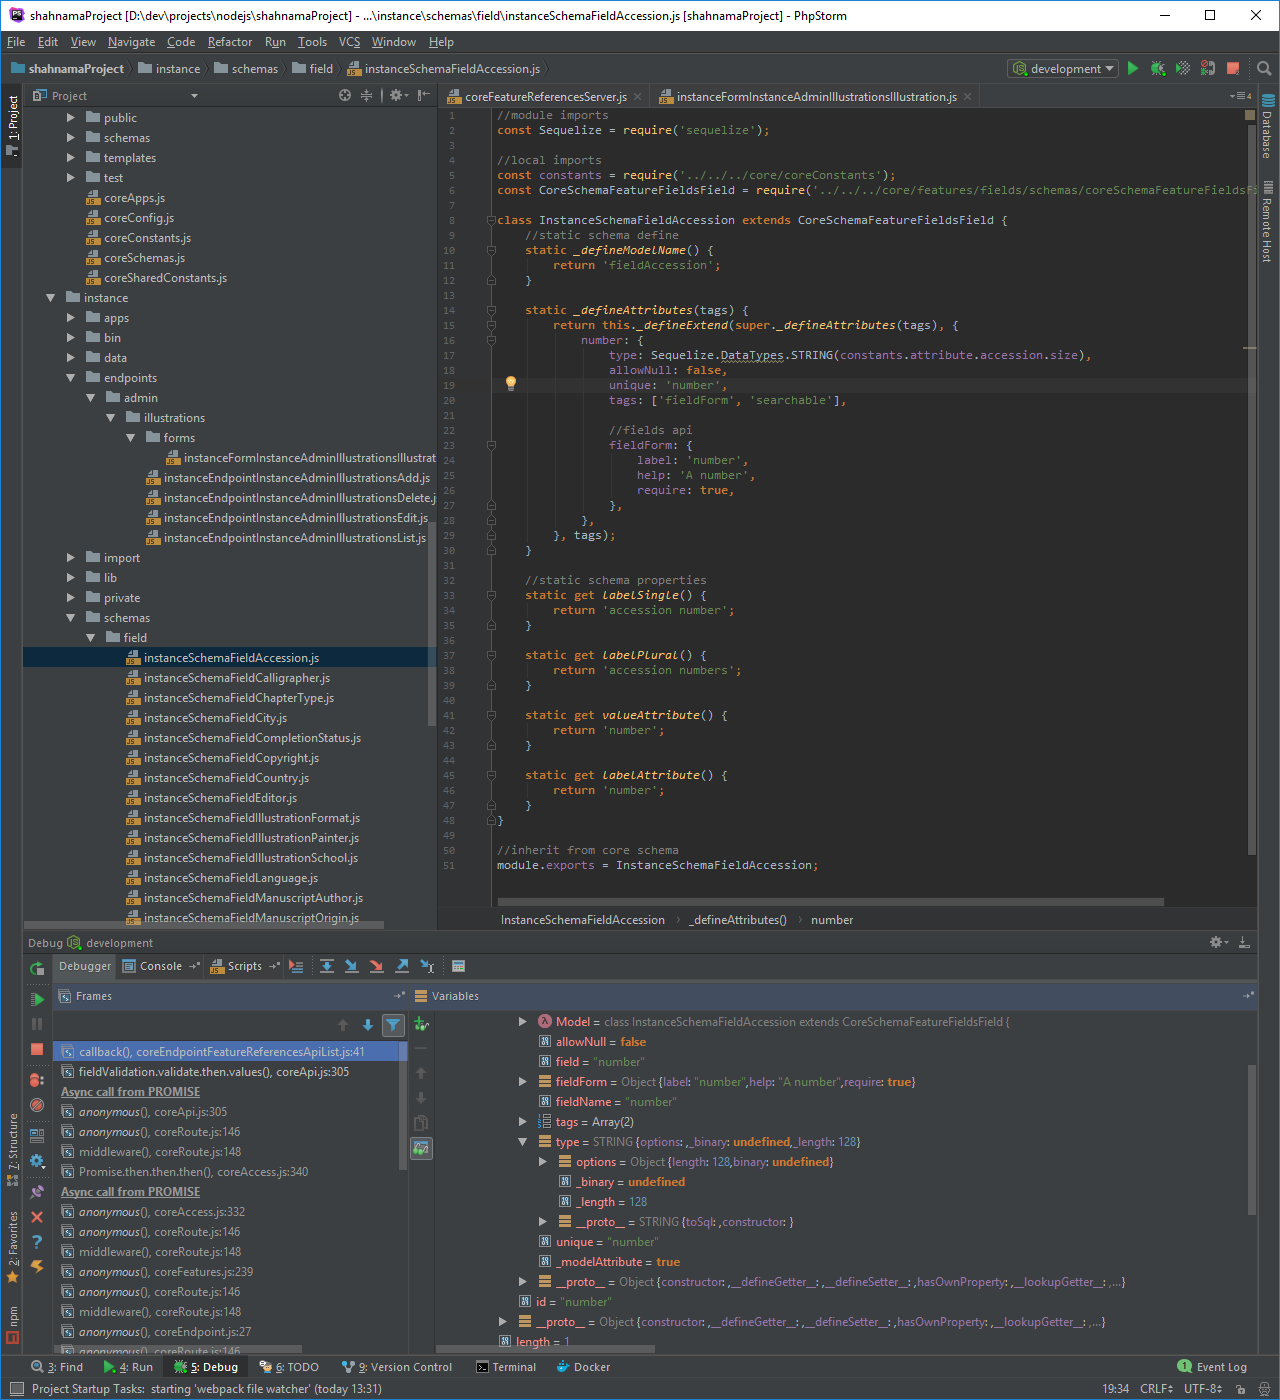 Developers - sequelize does not work with webstorm autocomplete